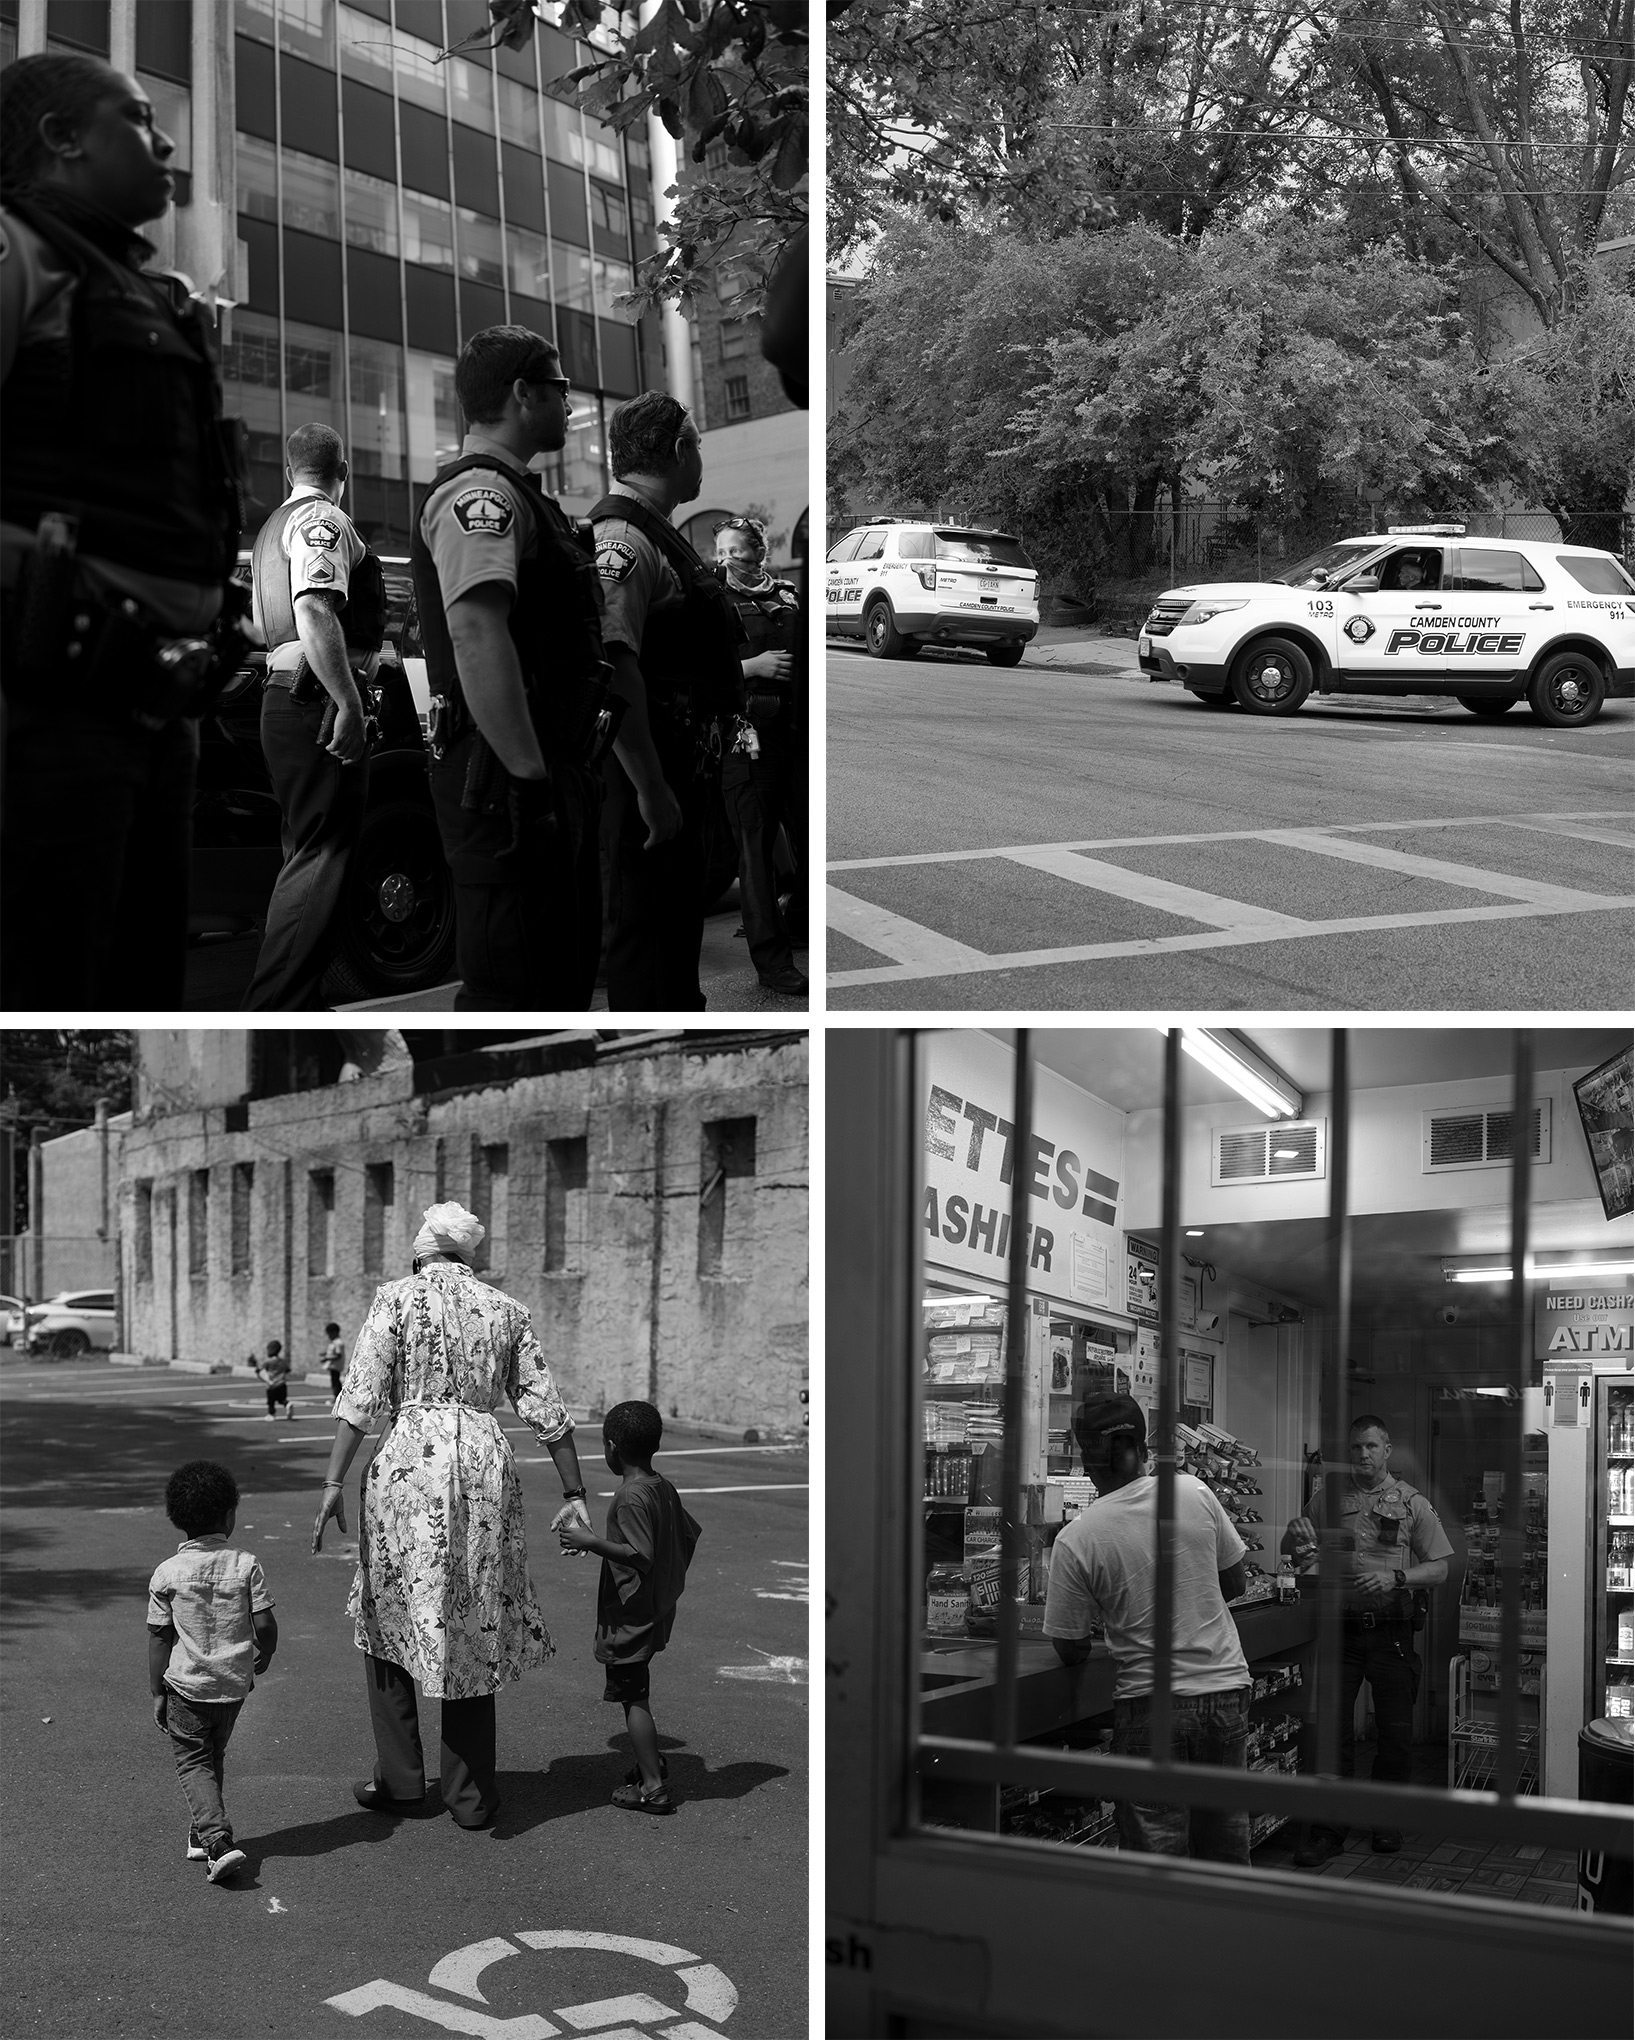 Clockwise from top left: Police officers in Minneapolis;  two Camden County, N.J., police vehicles; an officer at a Minneapolis gas station; and Sister Chabree Muhammad, with kids in Camden in July.